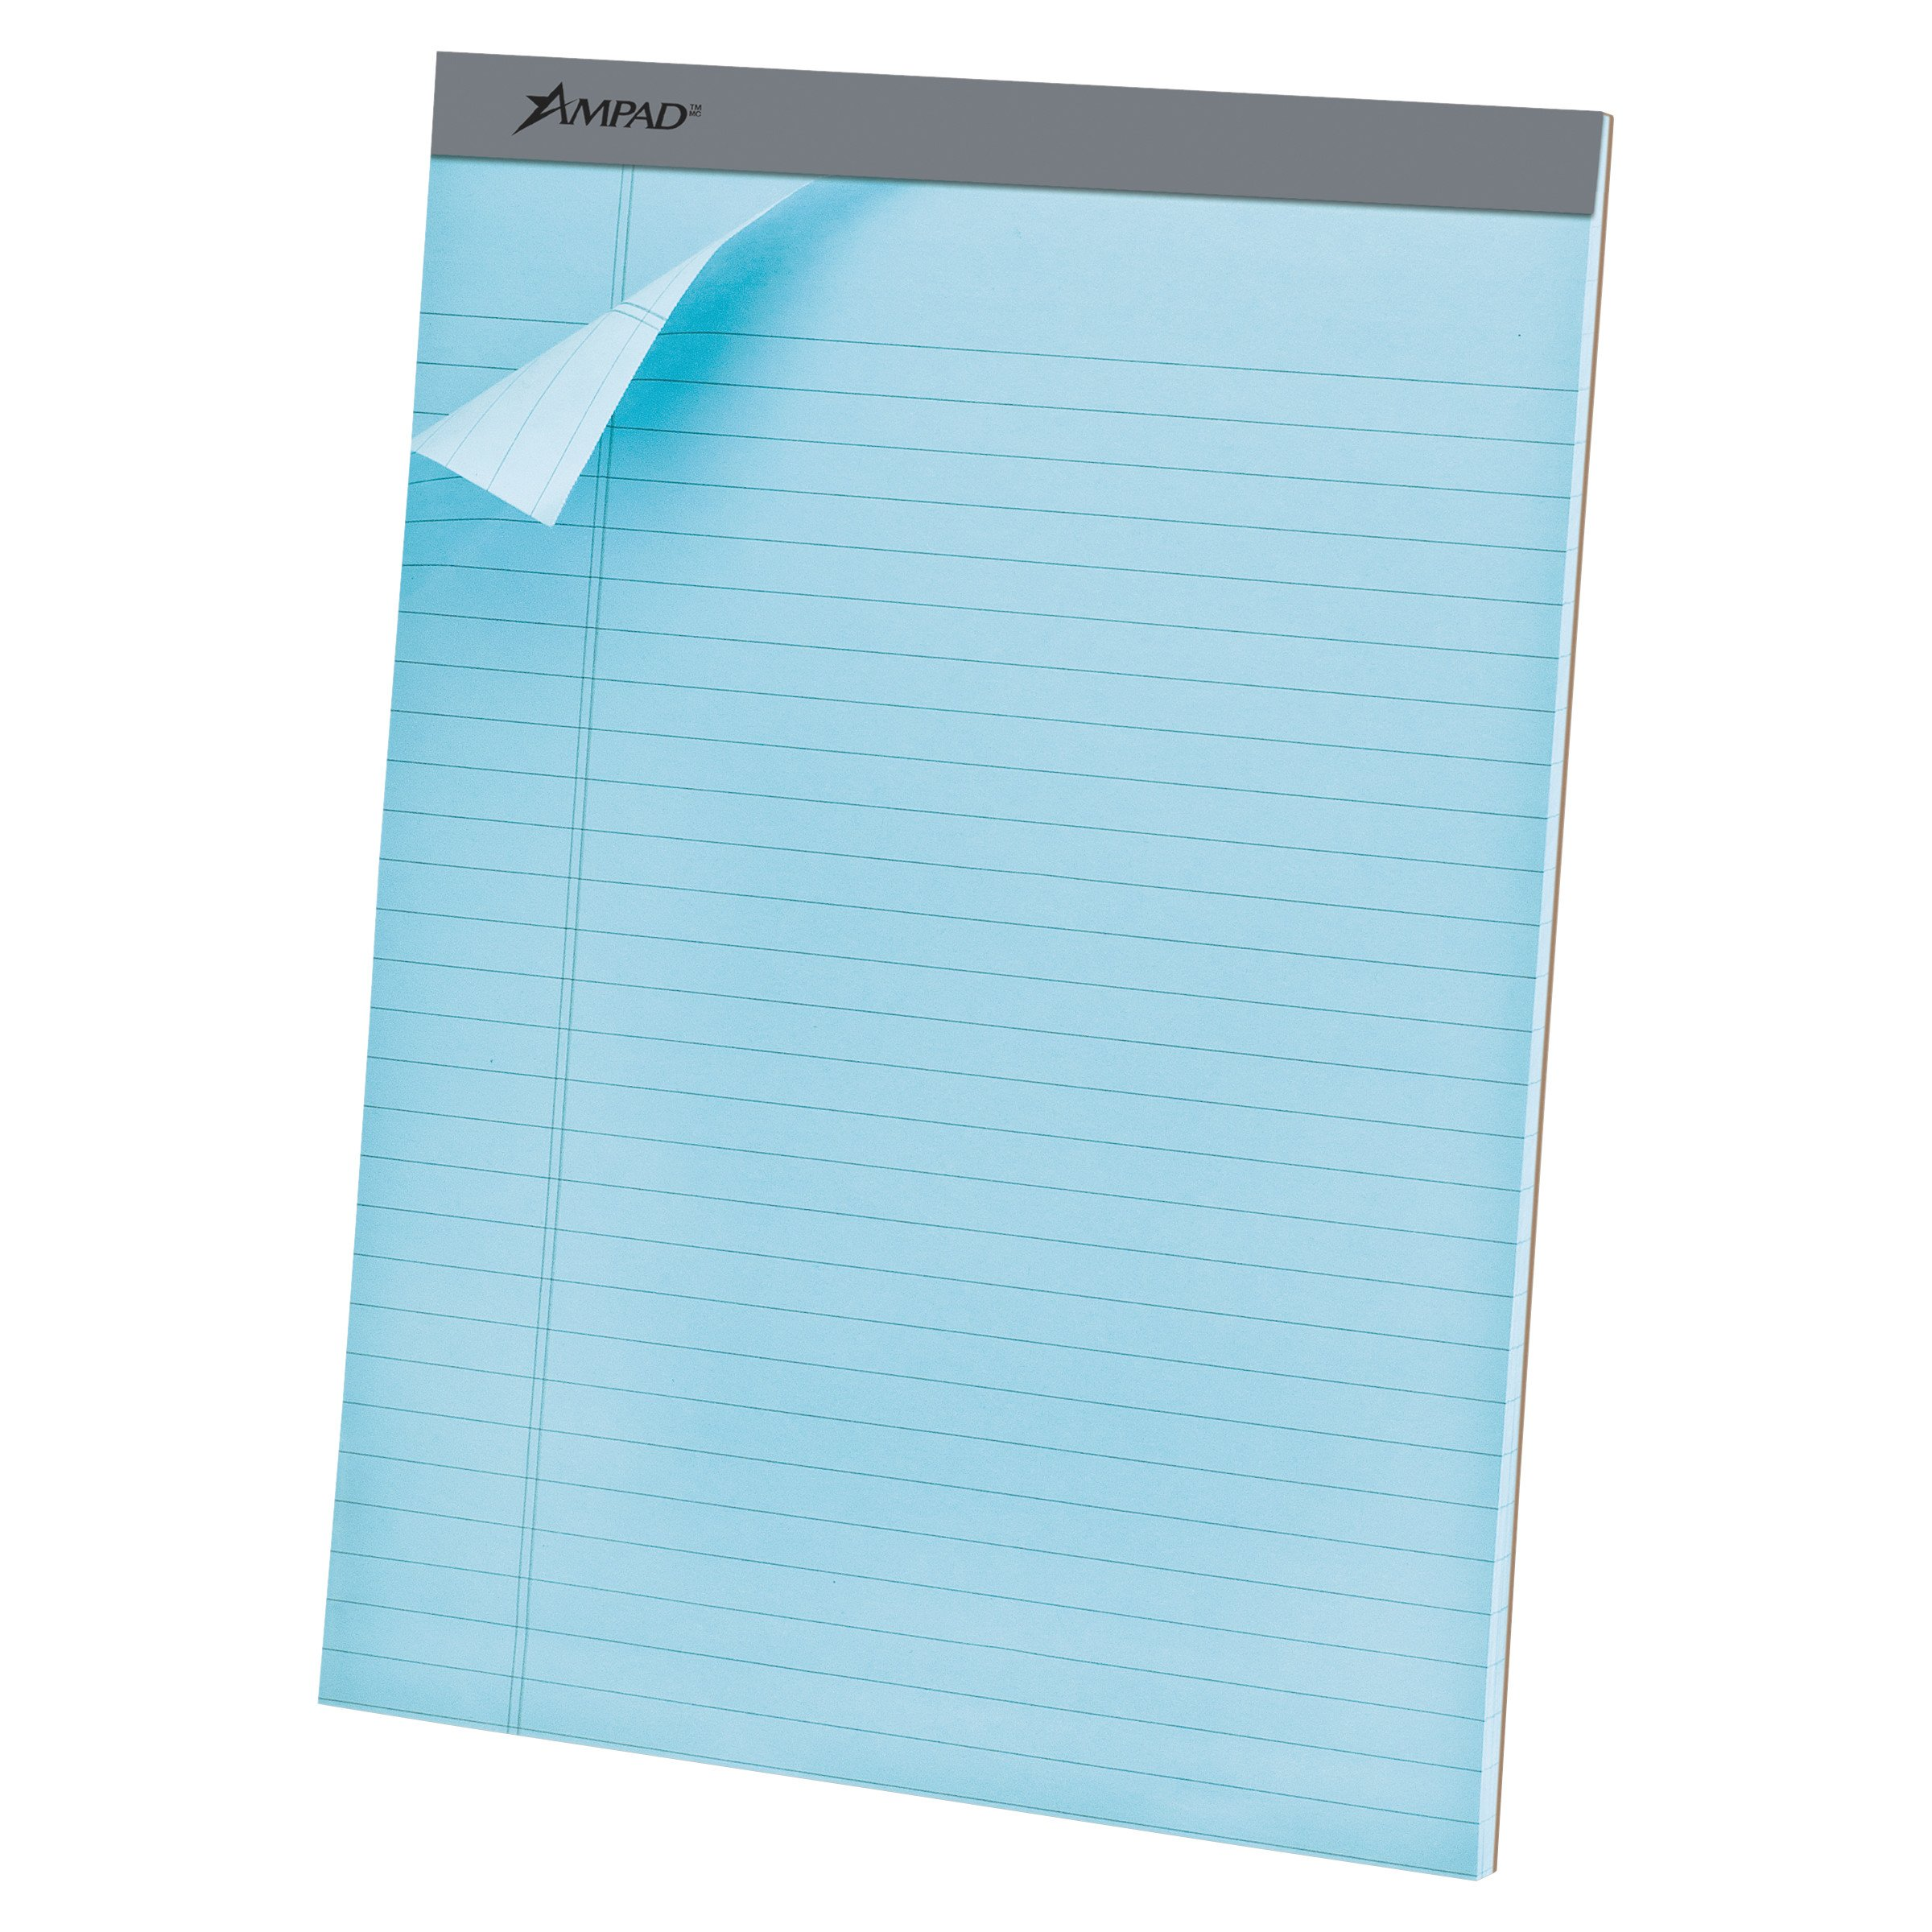 Ampad TOP20670 20-670 Evidence Blue Legal Ruled Pads, 8-1/2 x 11-3/4, 50 Sheets/pad, Dozen